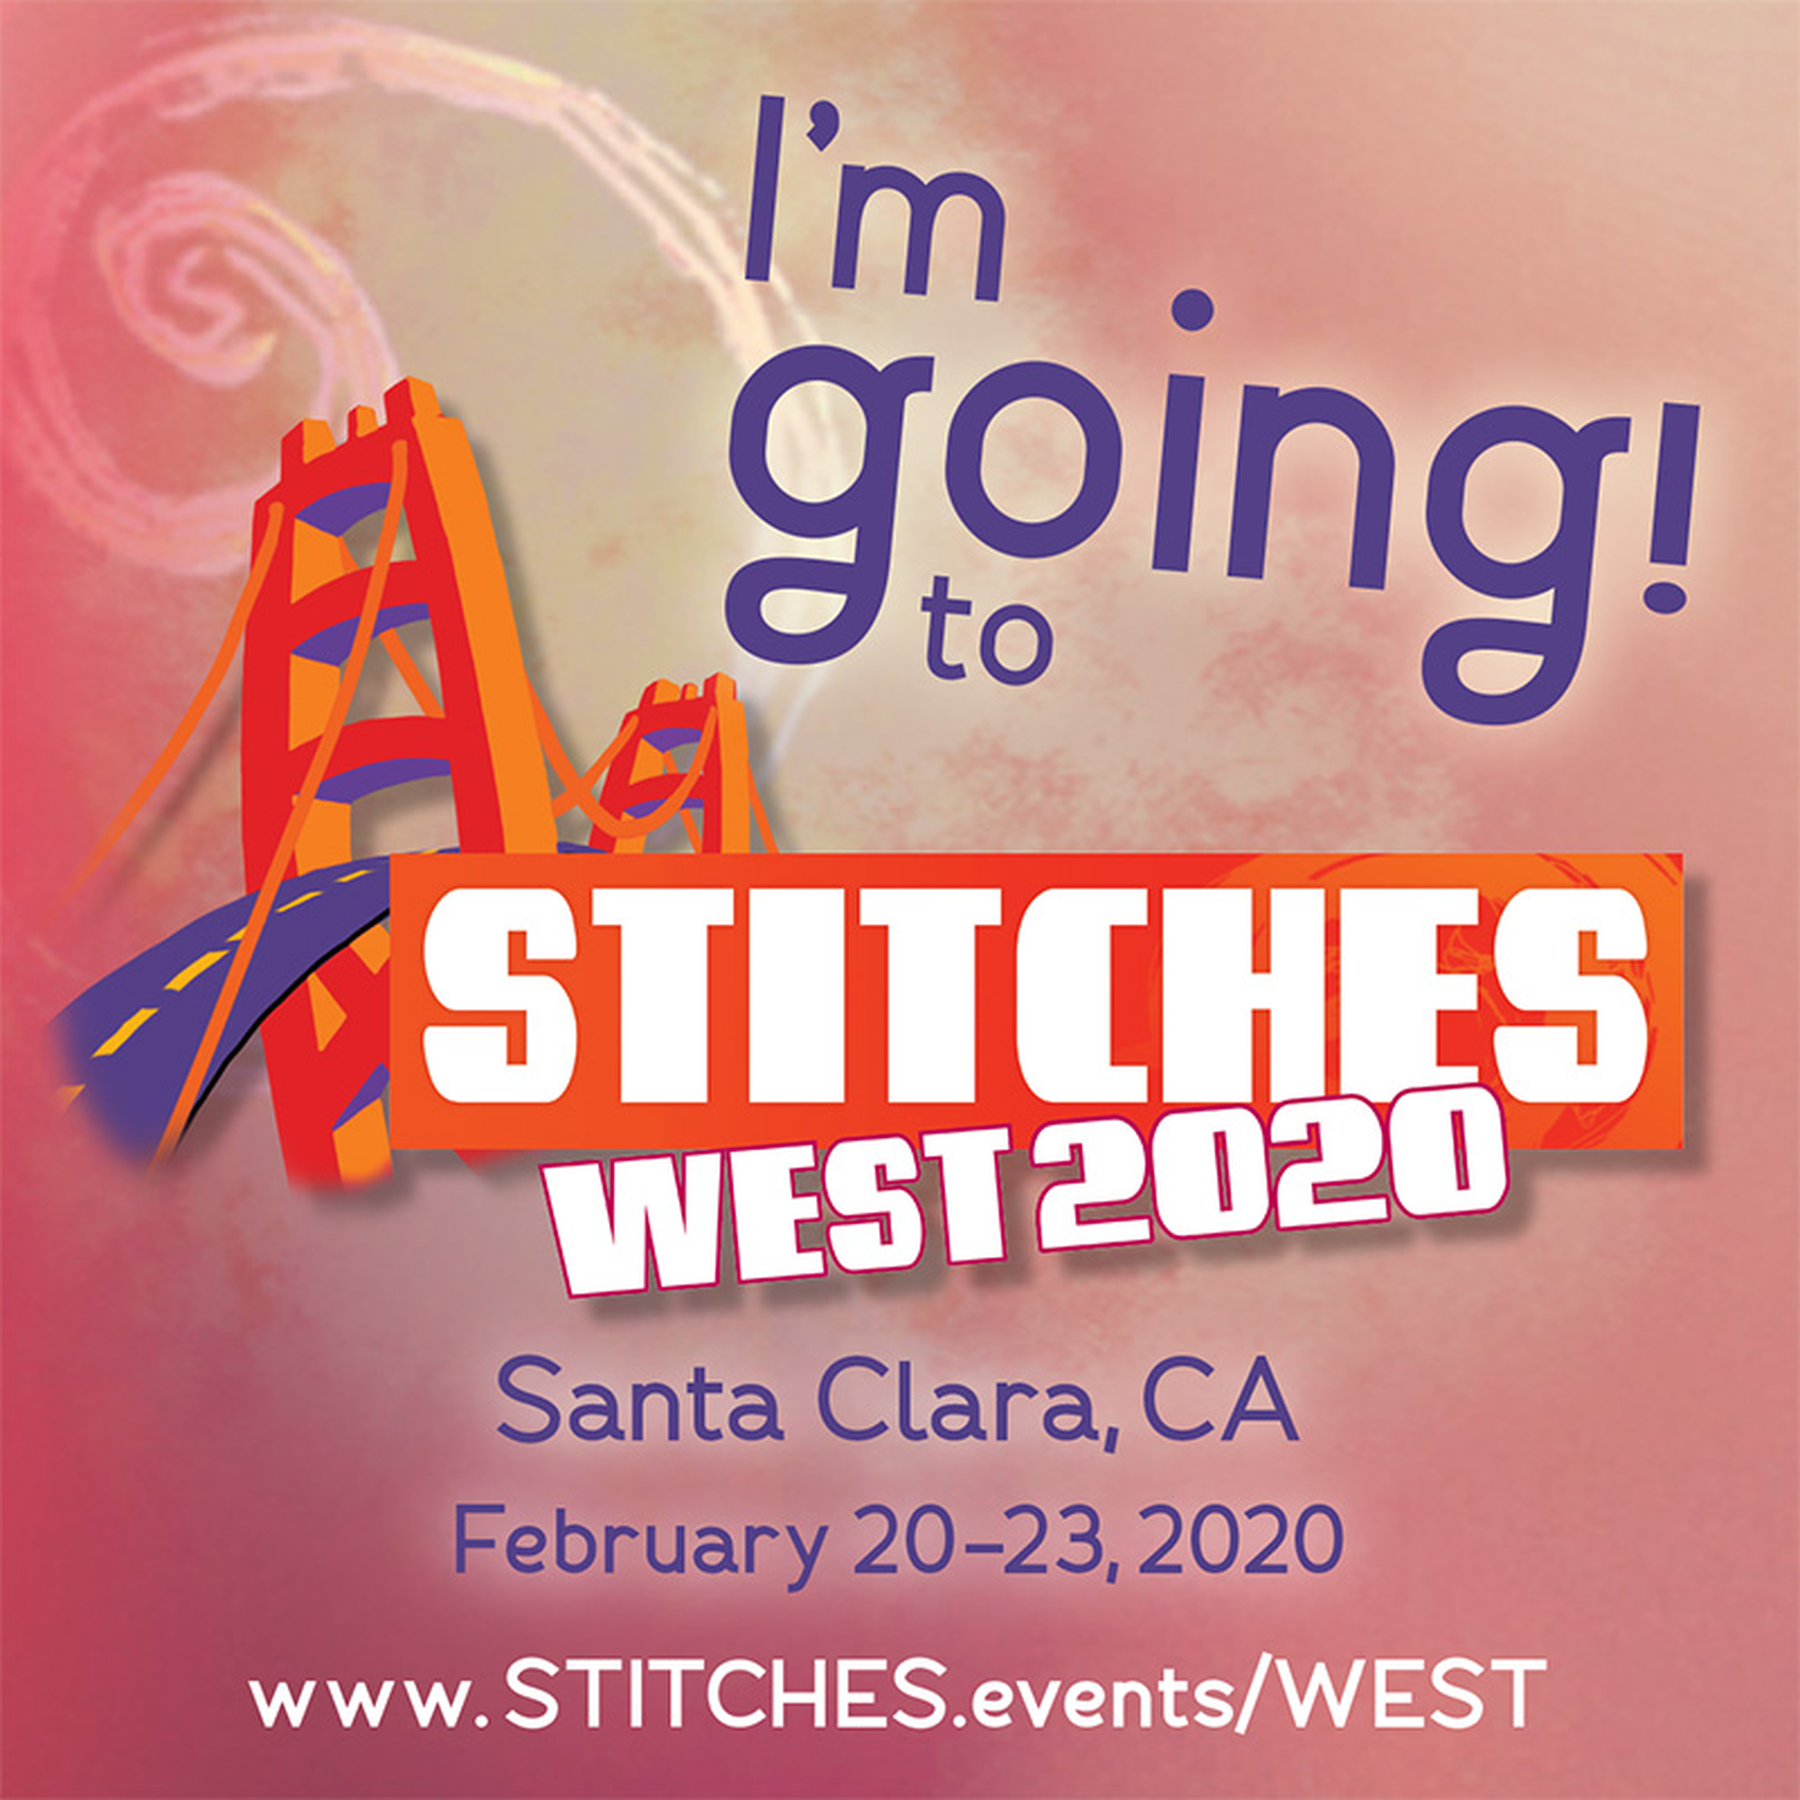 Stitches West 2020 logo.png